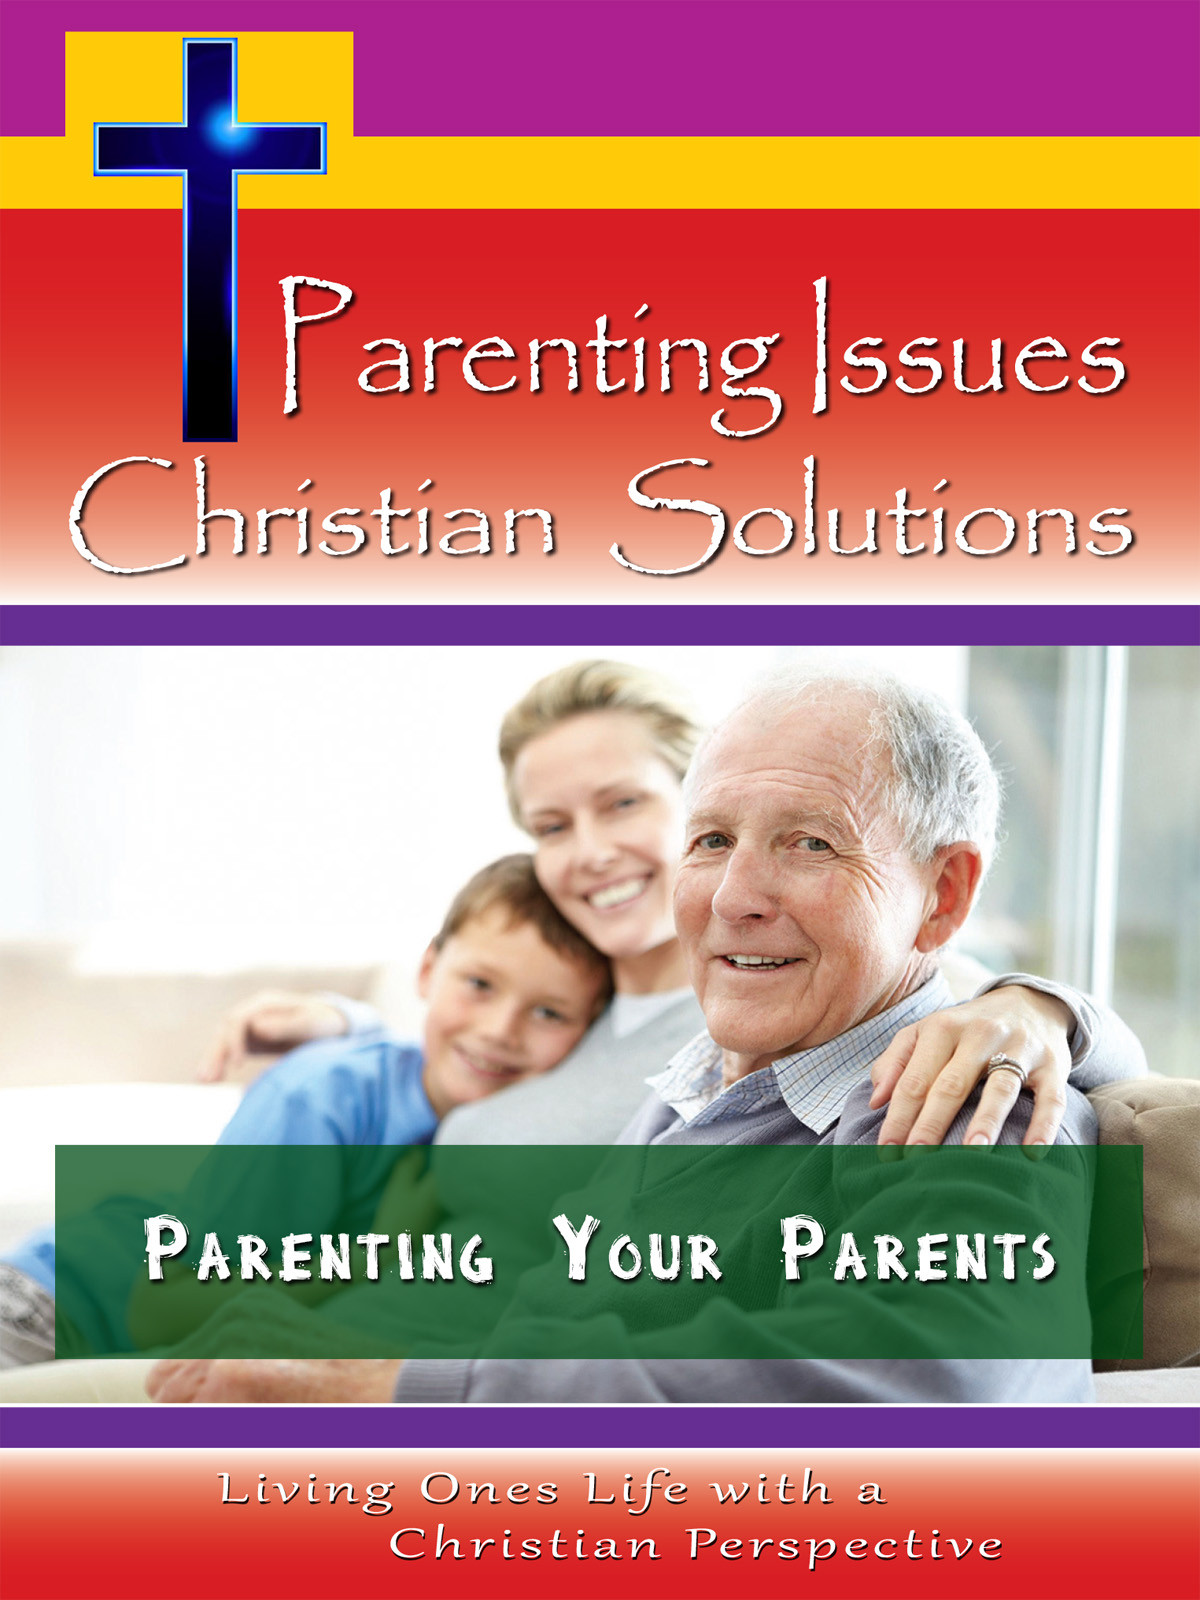 CH10027 - Parenting Your Parents